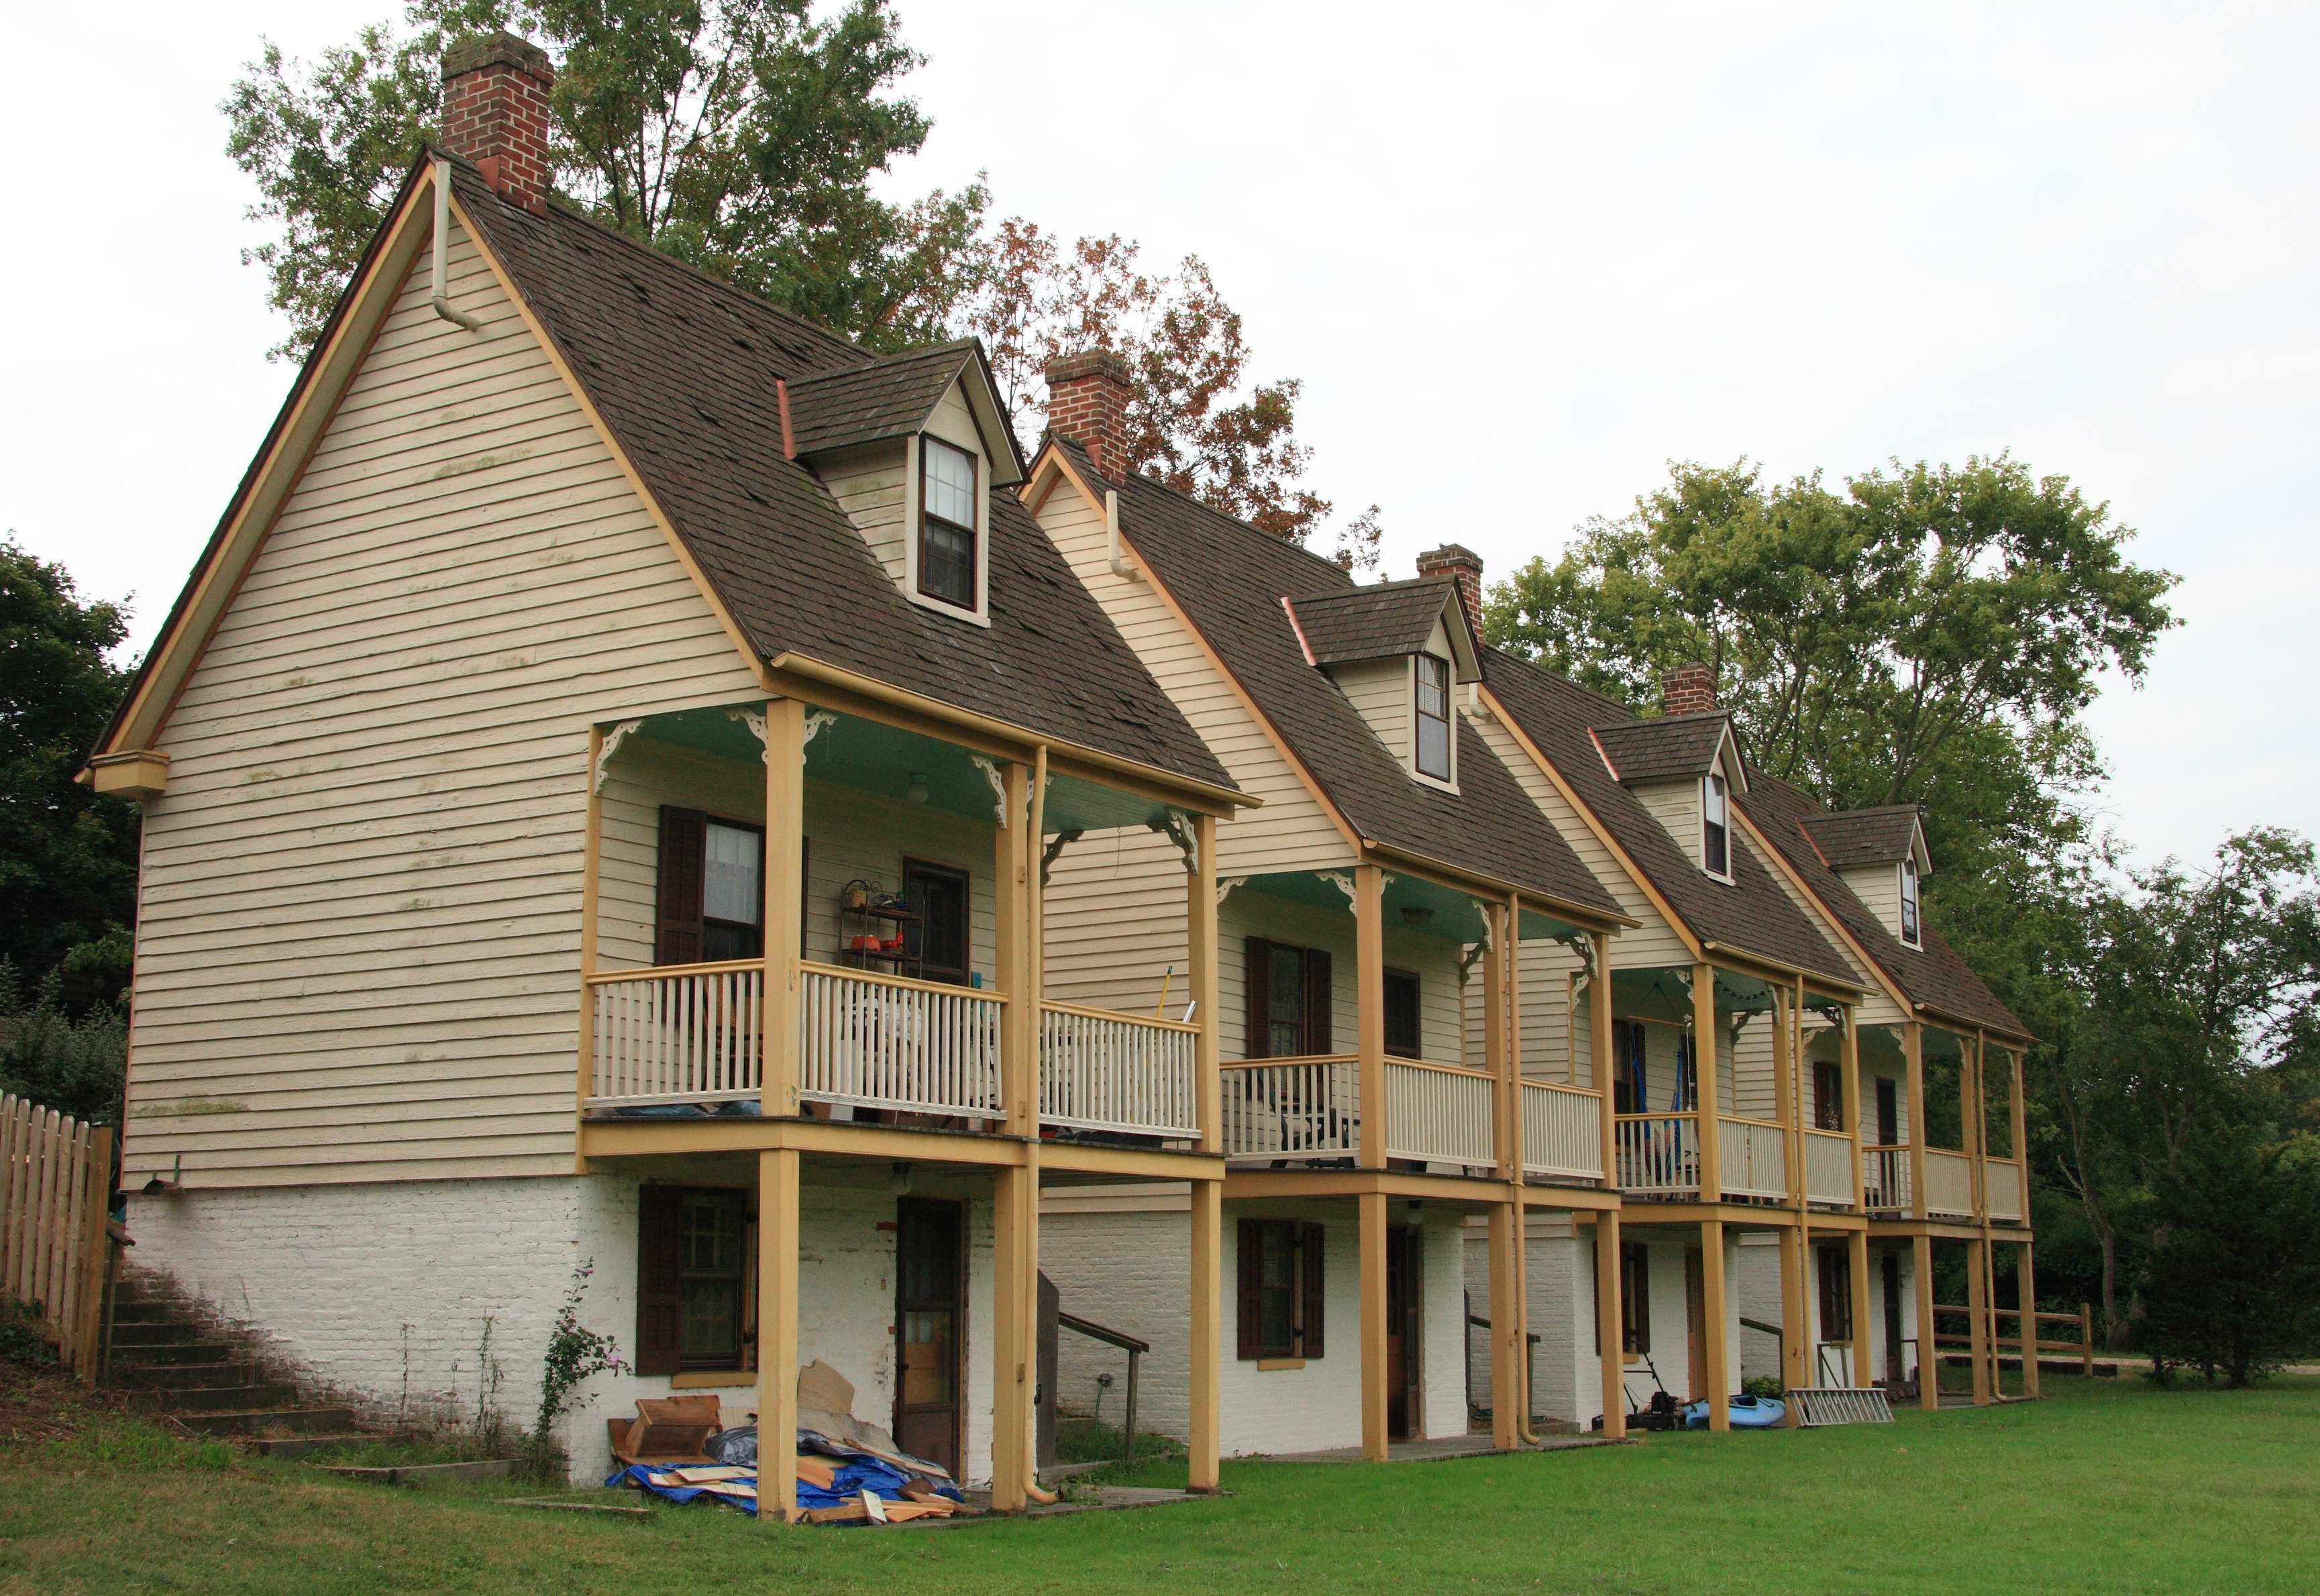 Captains houses centreville maryland jpg